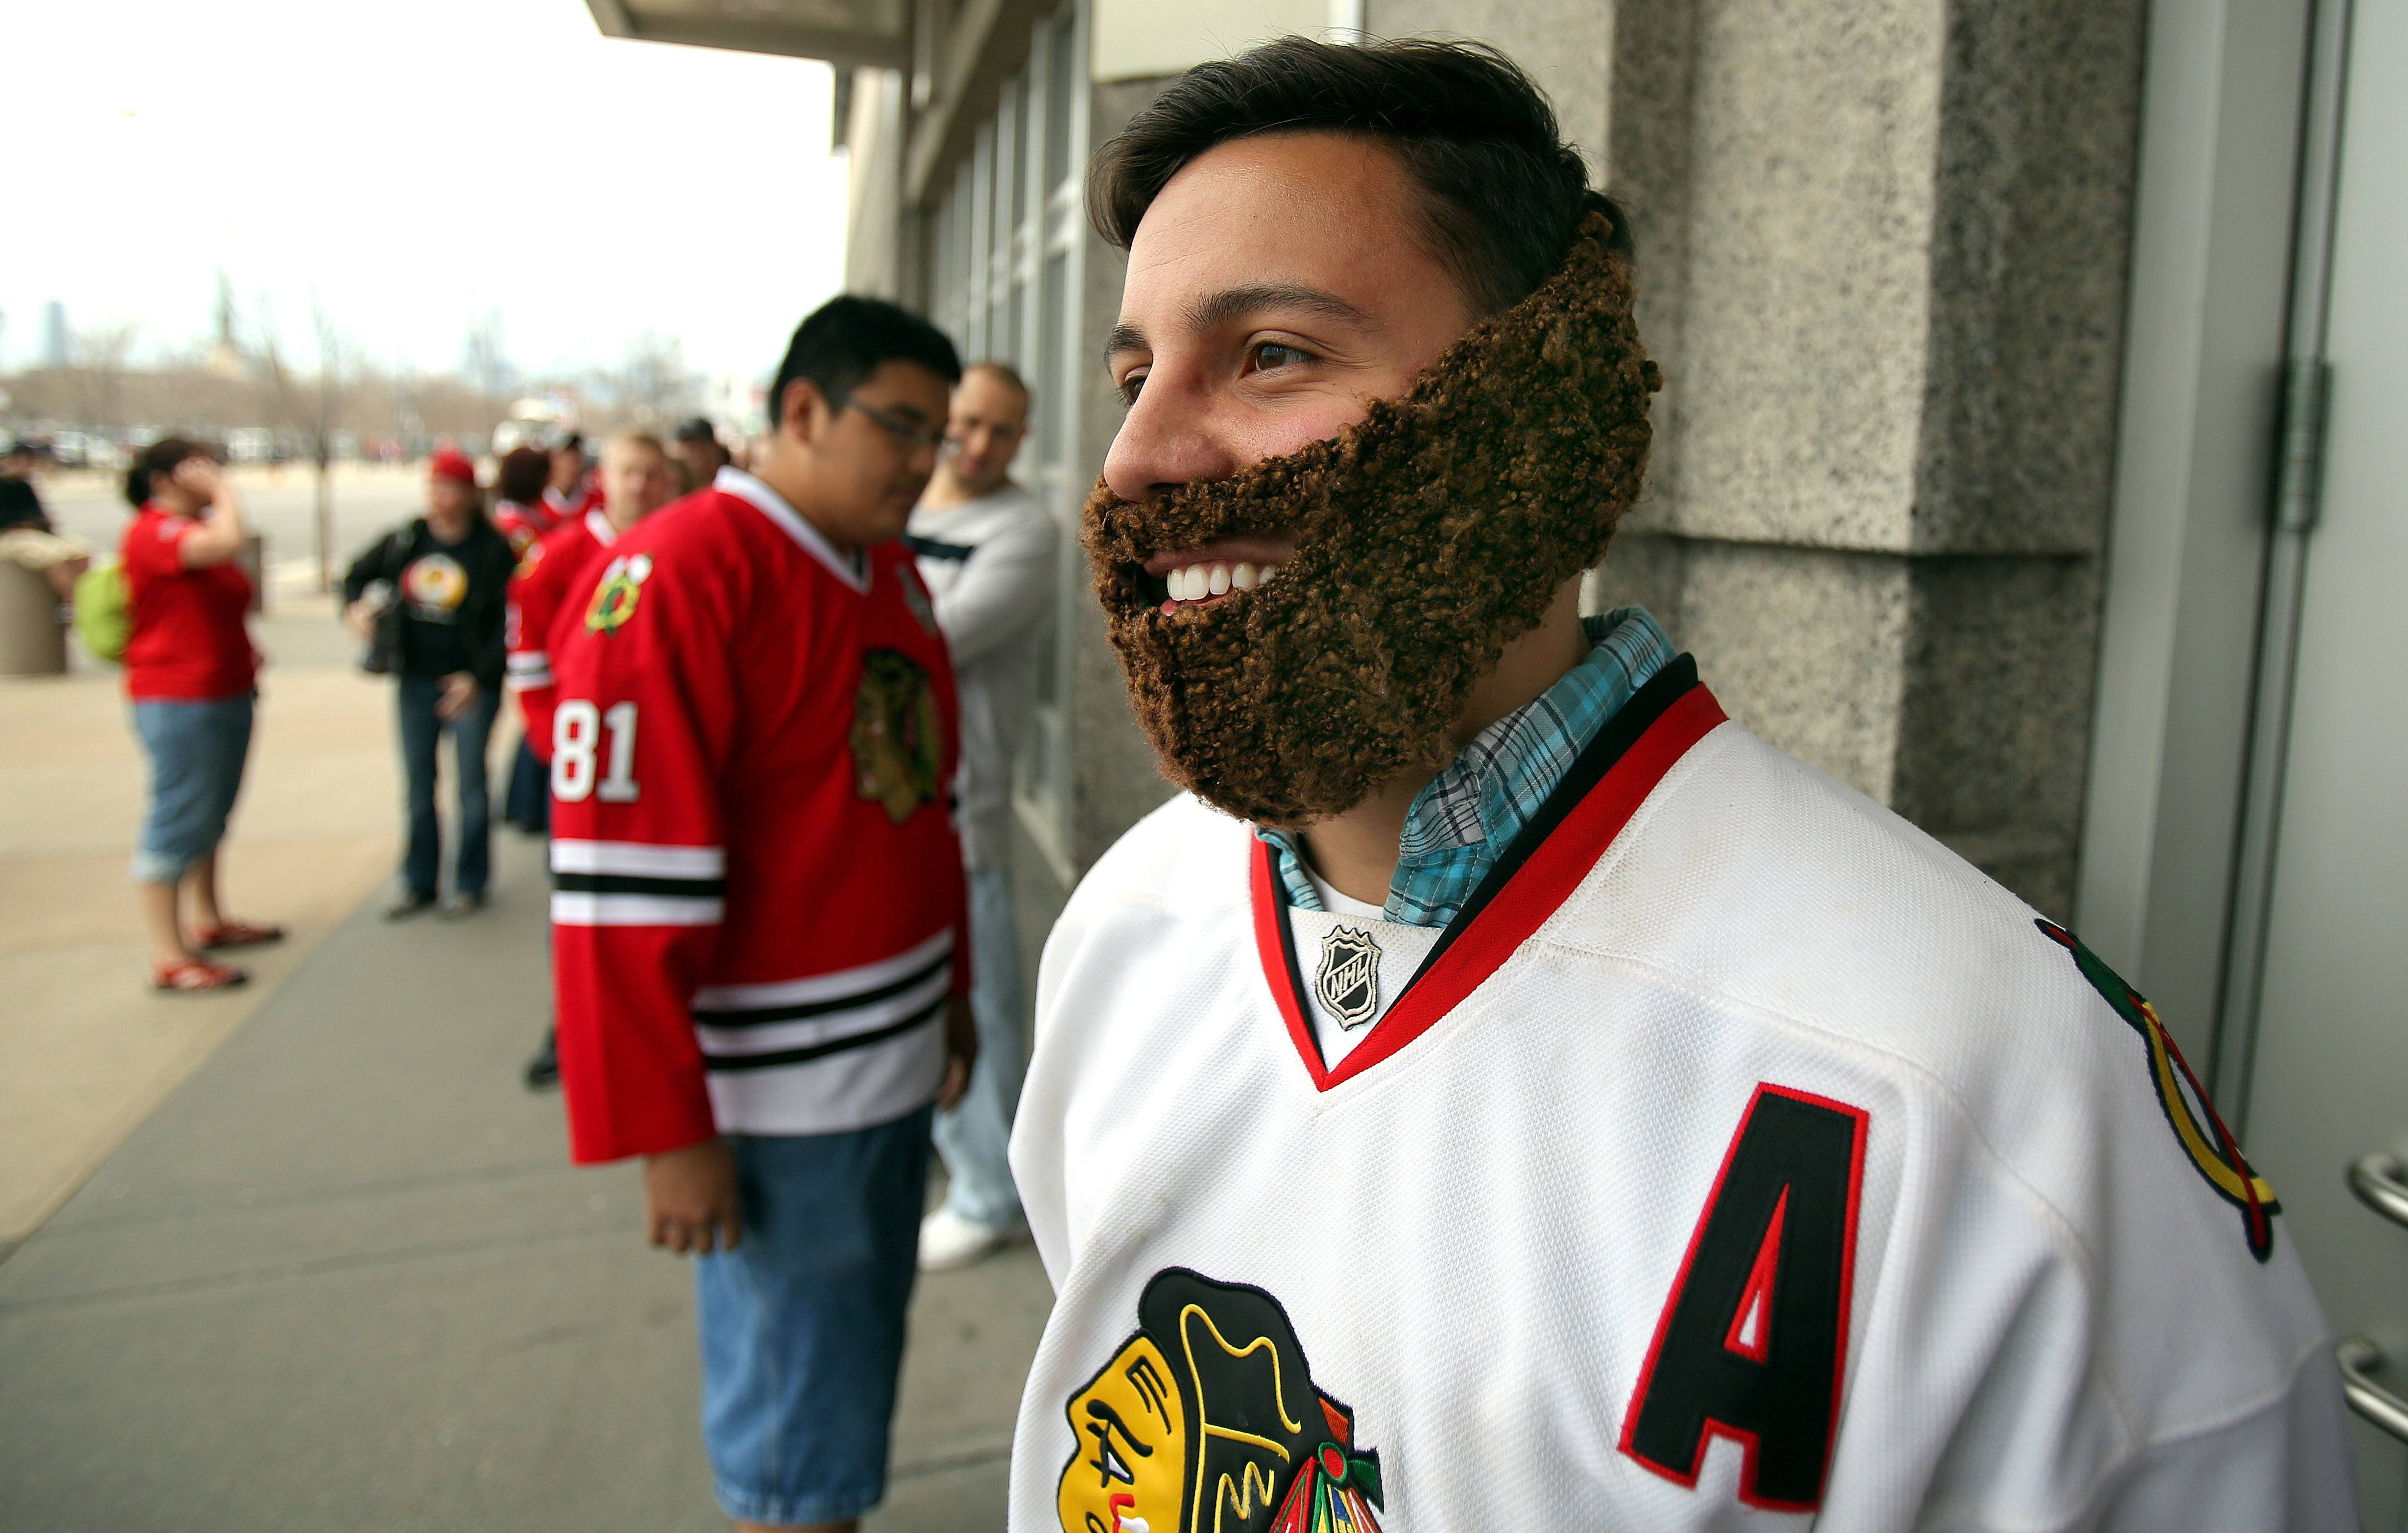 Steve Lopez sports a playoff beard made of carpet as he waits to enter the United Center.